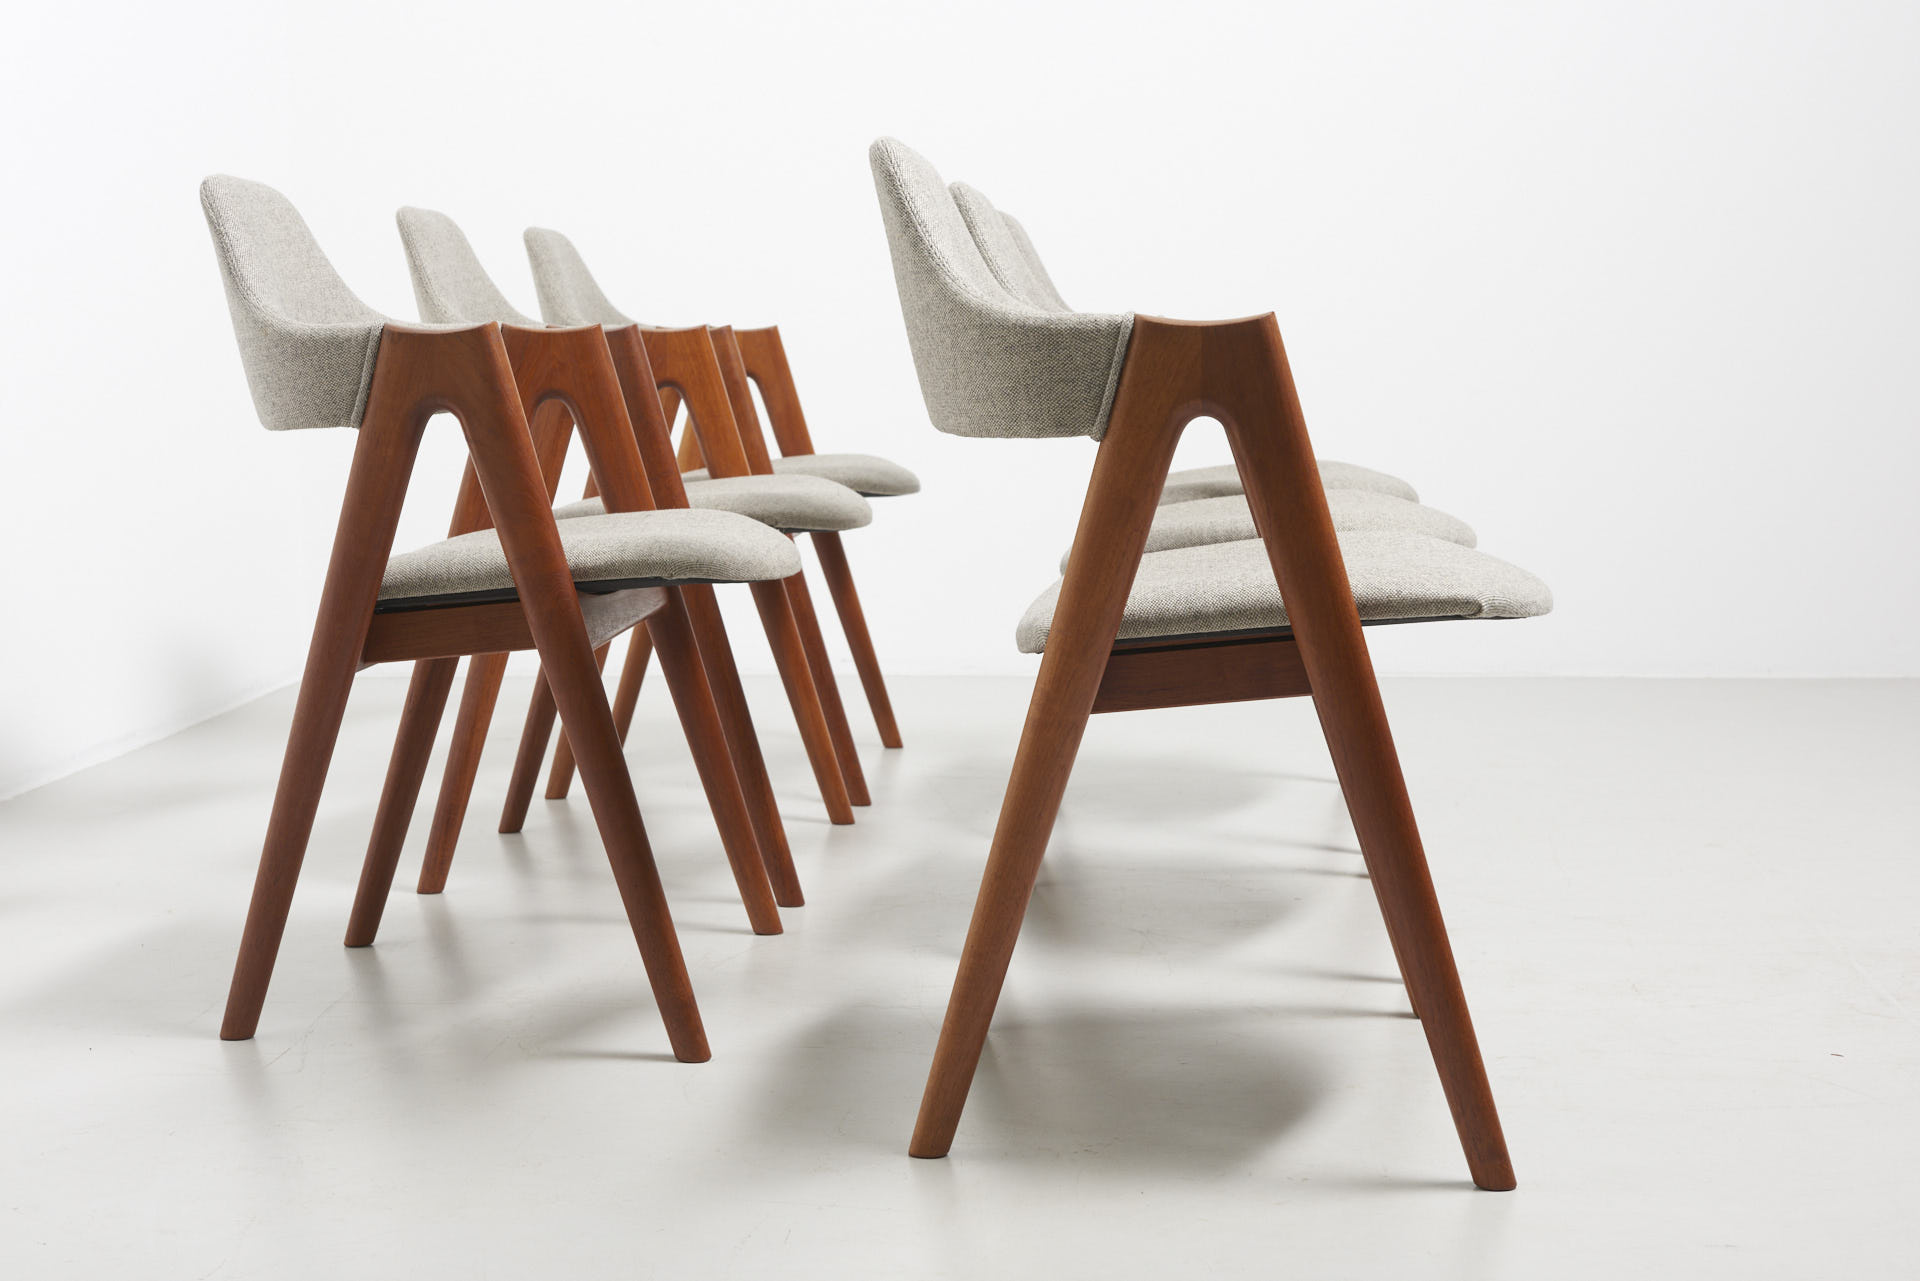 modestfurniture-vintage-2206-kai-kristiansen-compass-chairs03